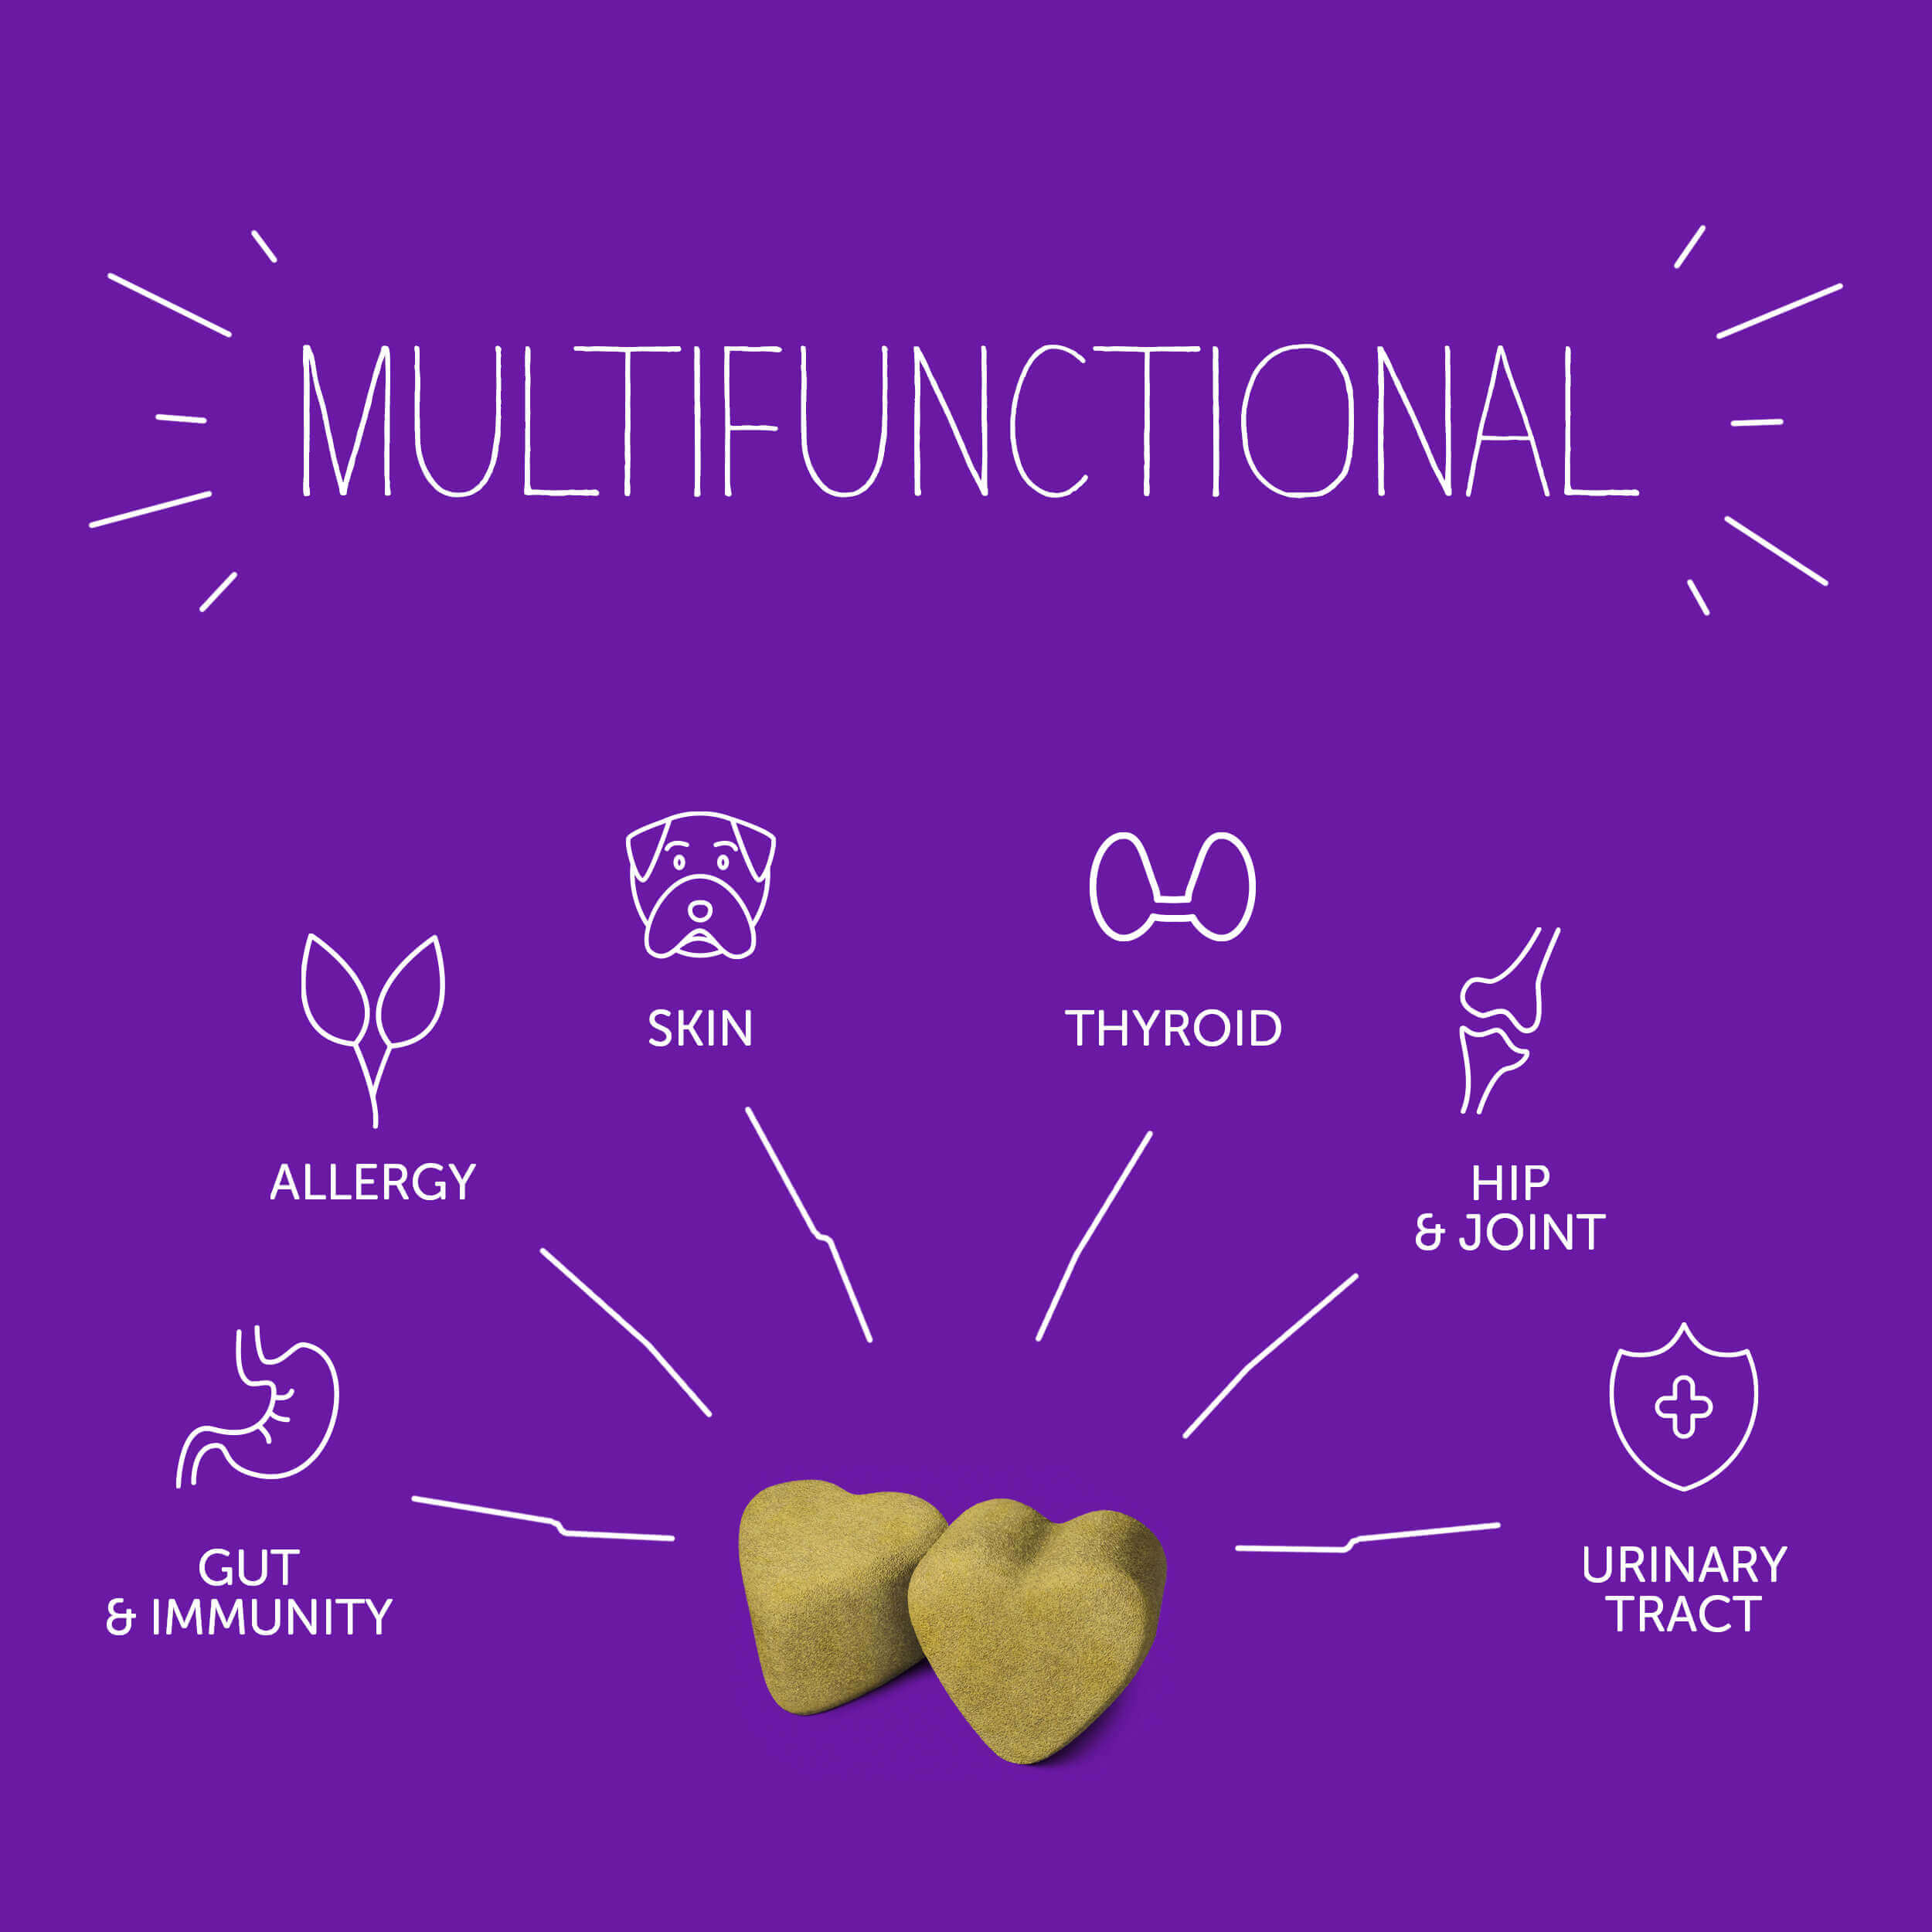 Multifunctional - Gut & Immunity, allergy, skin, thyroid, hip & joint, urinary tract